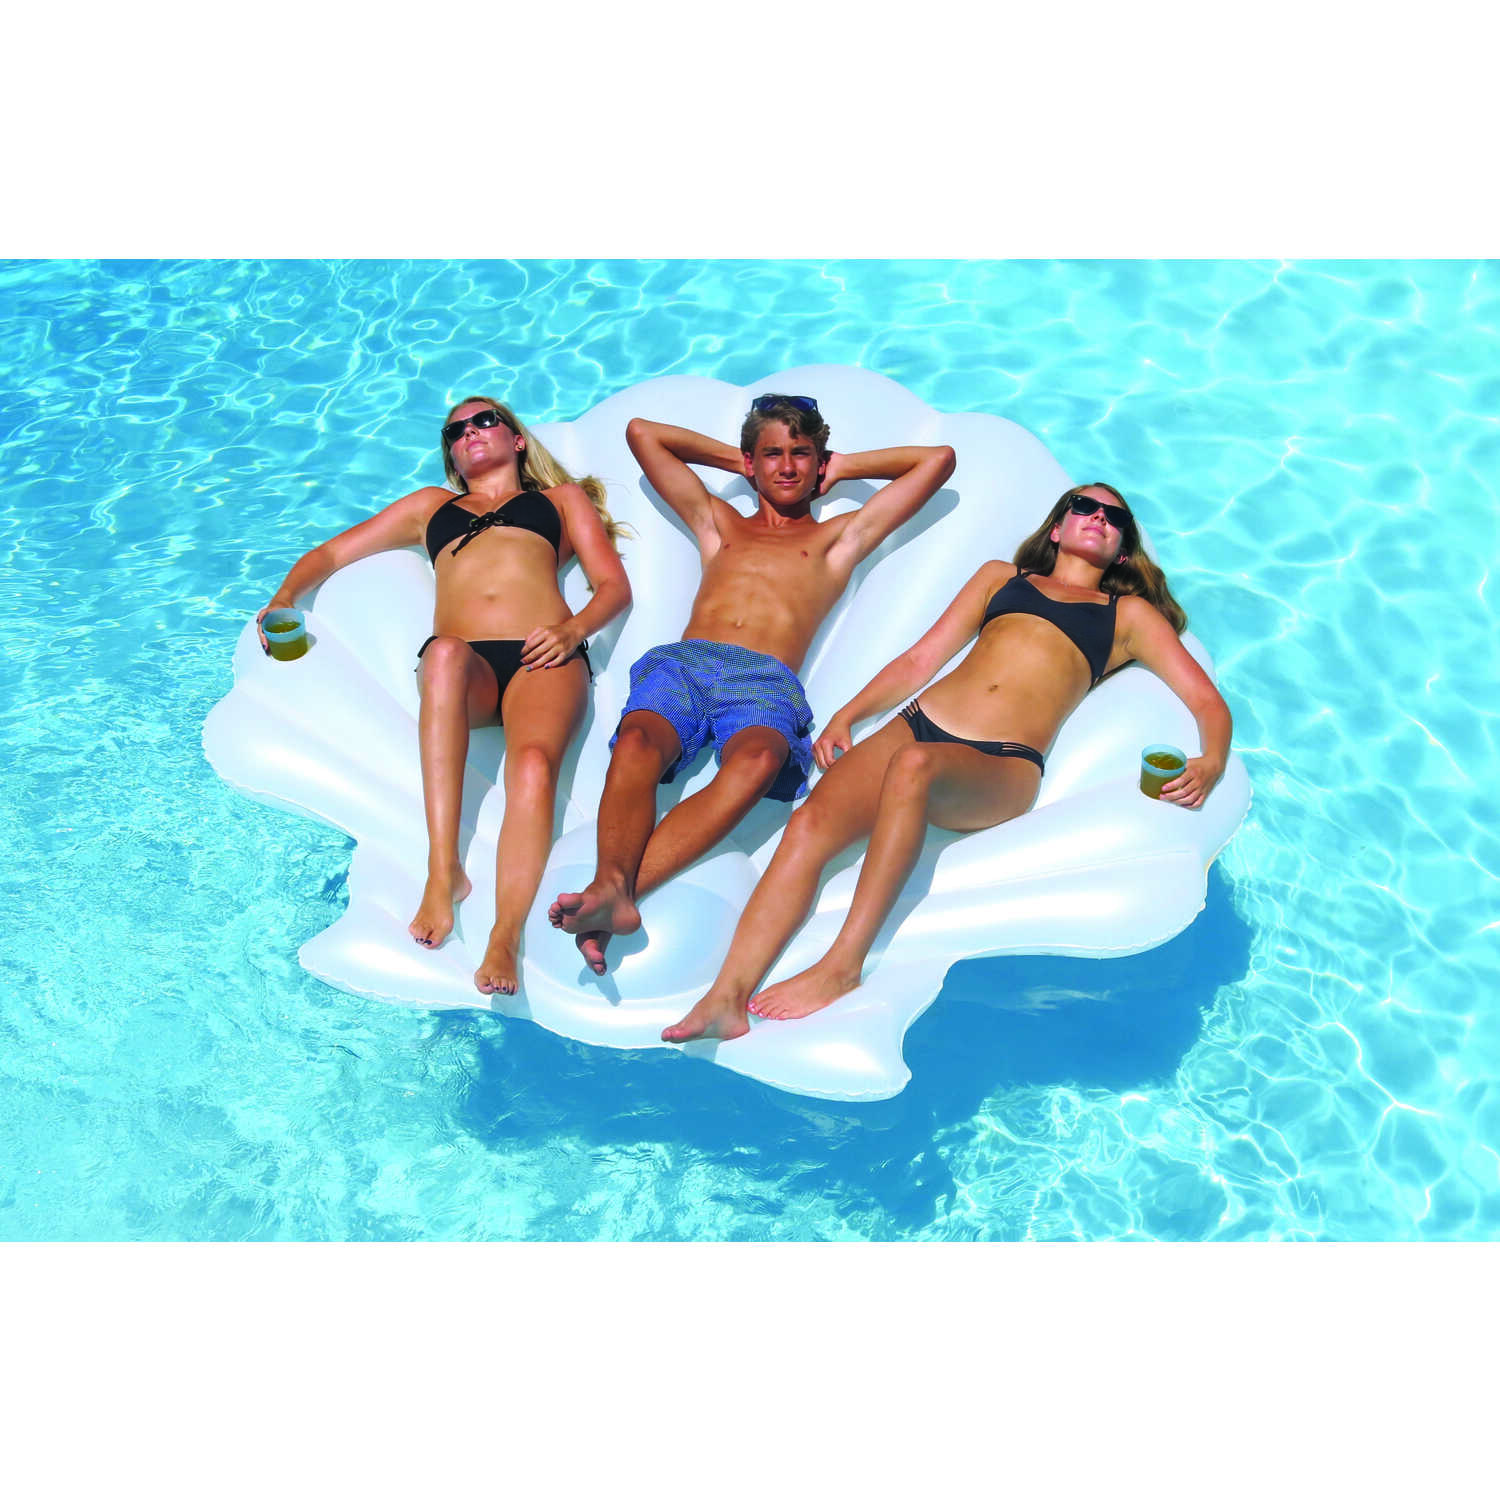 Swimline  White  Vinyl  Inflatable Seashell  Pool Float